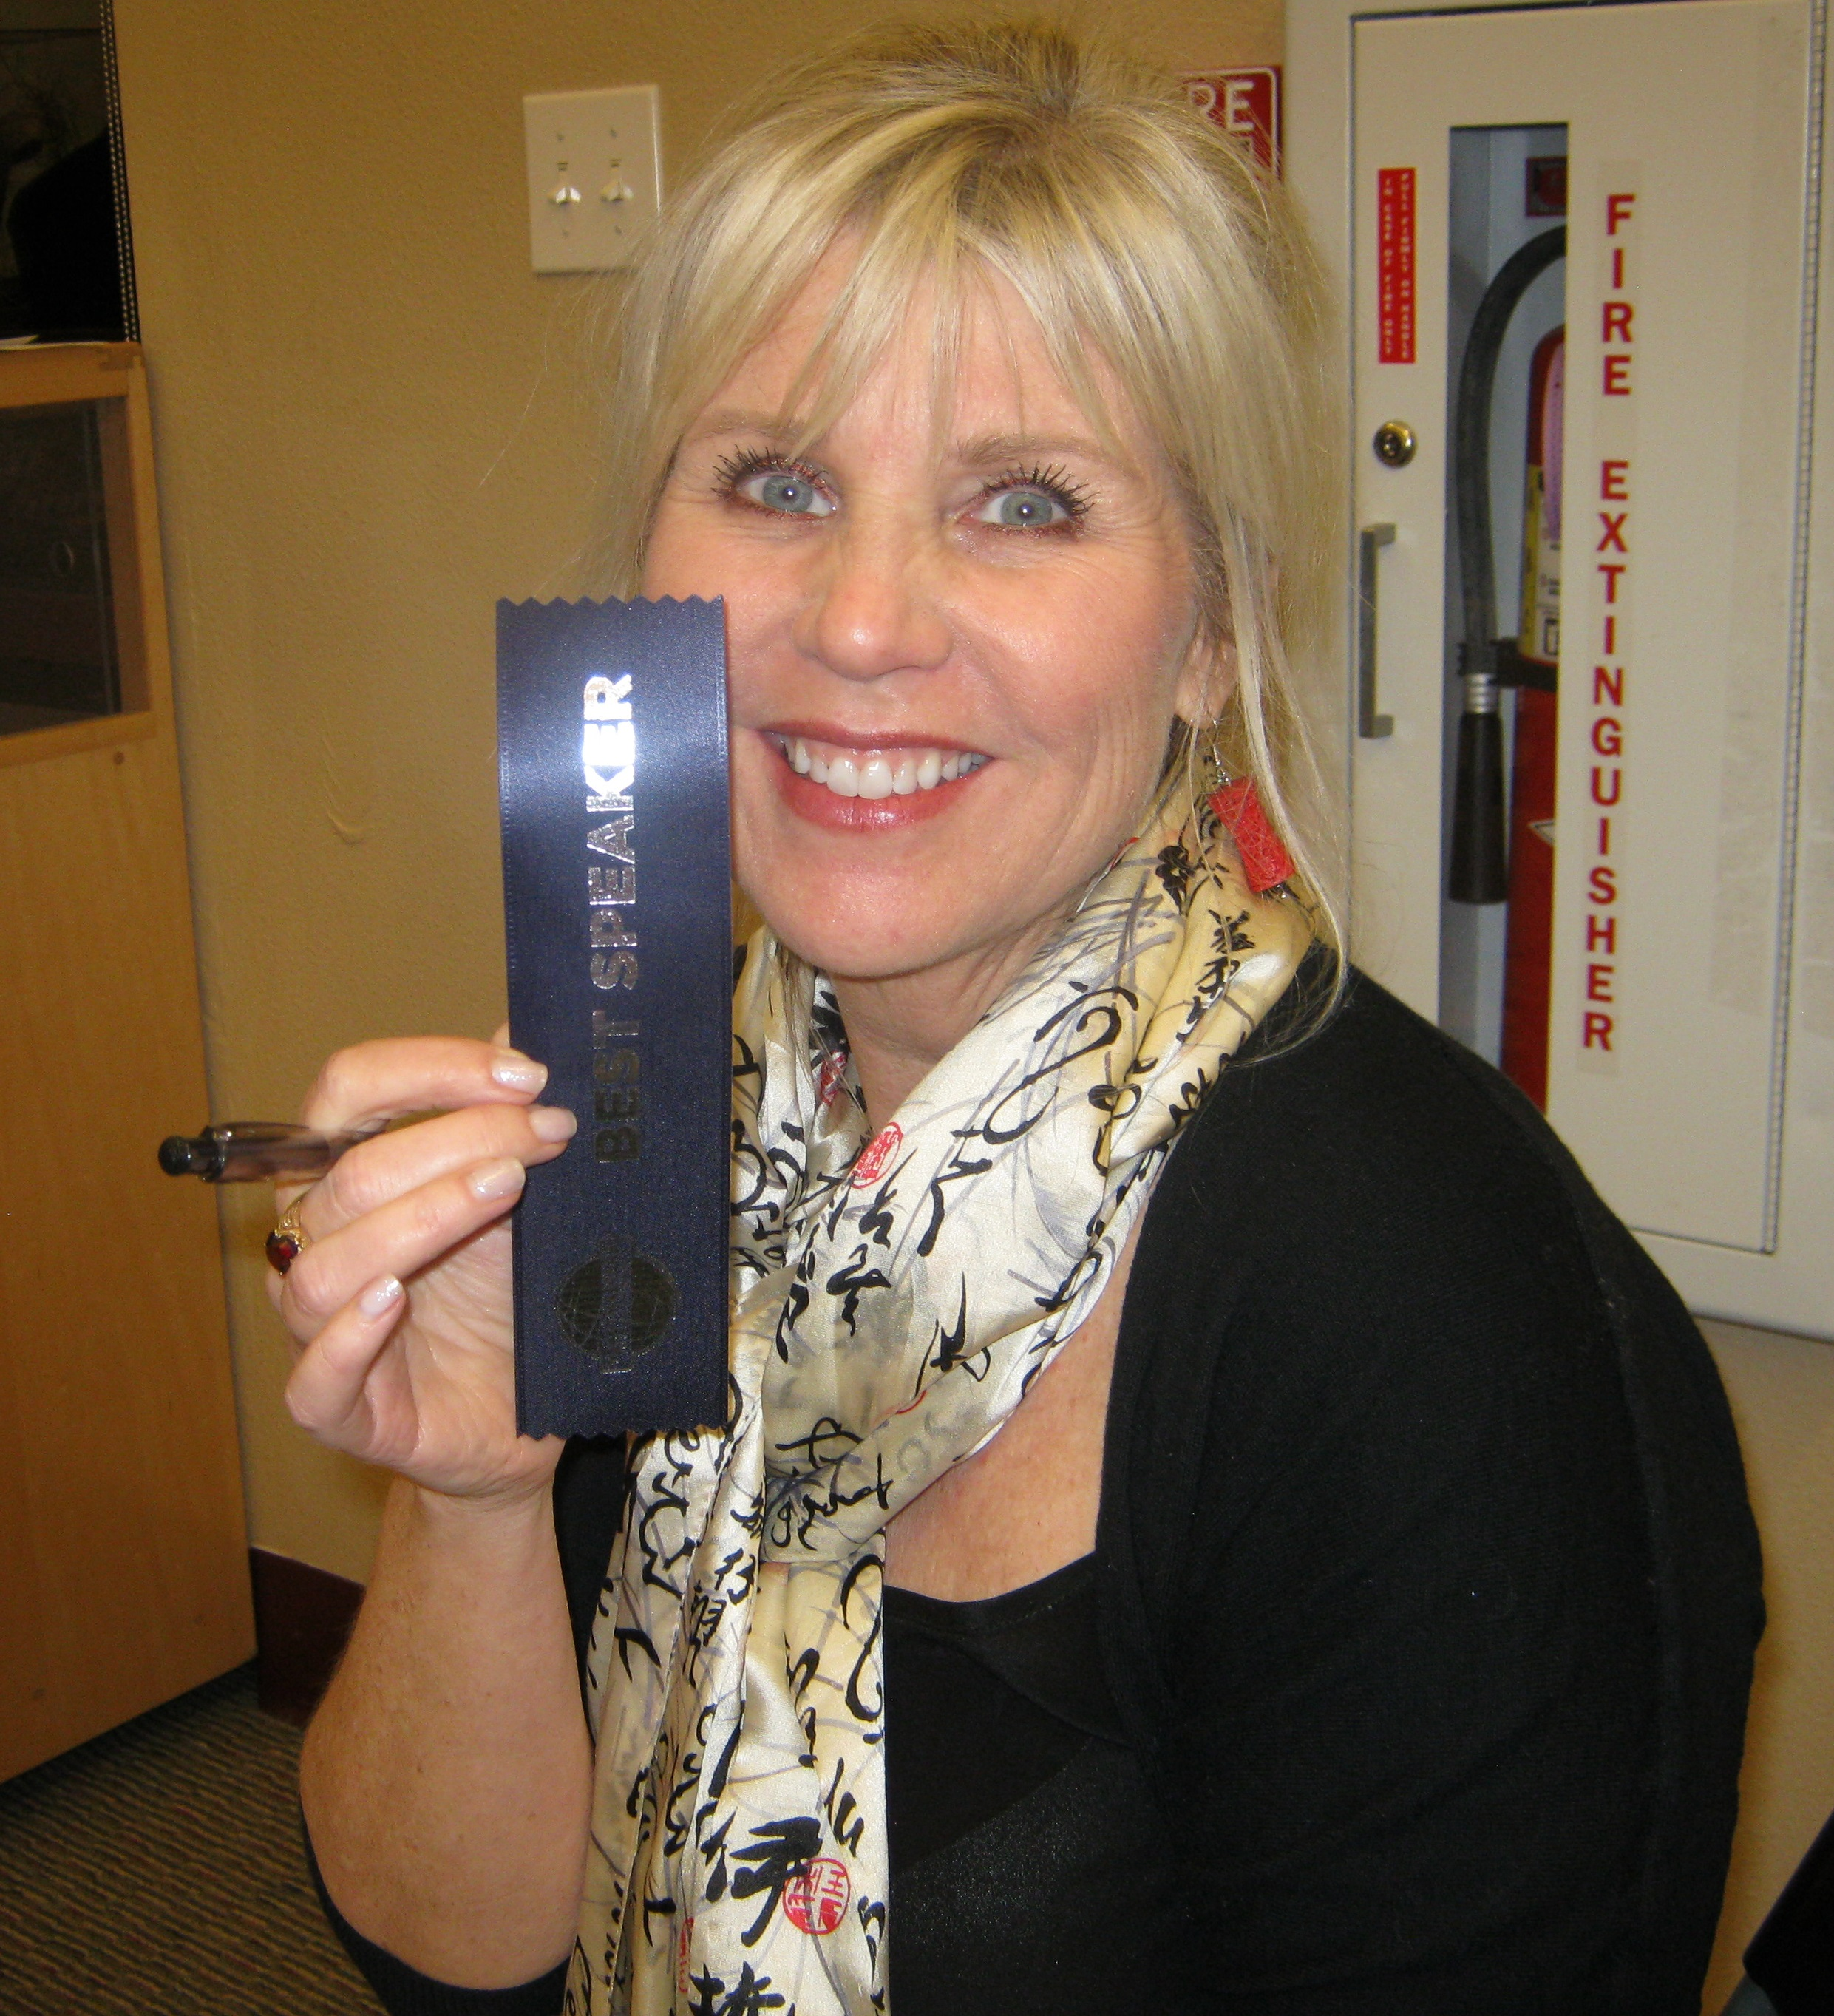 Terrie with Best Speaker Ribbon.jpg